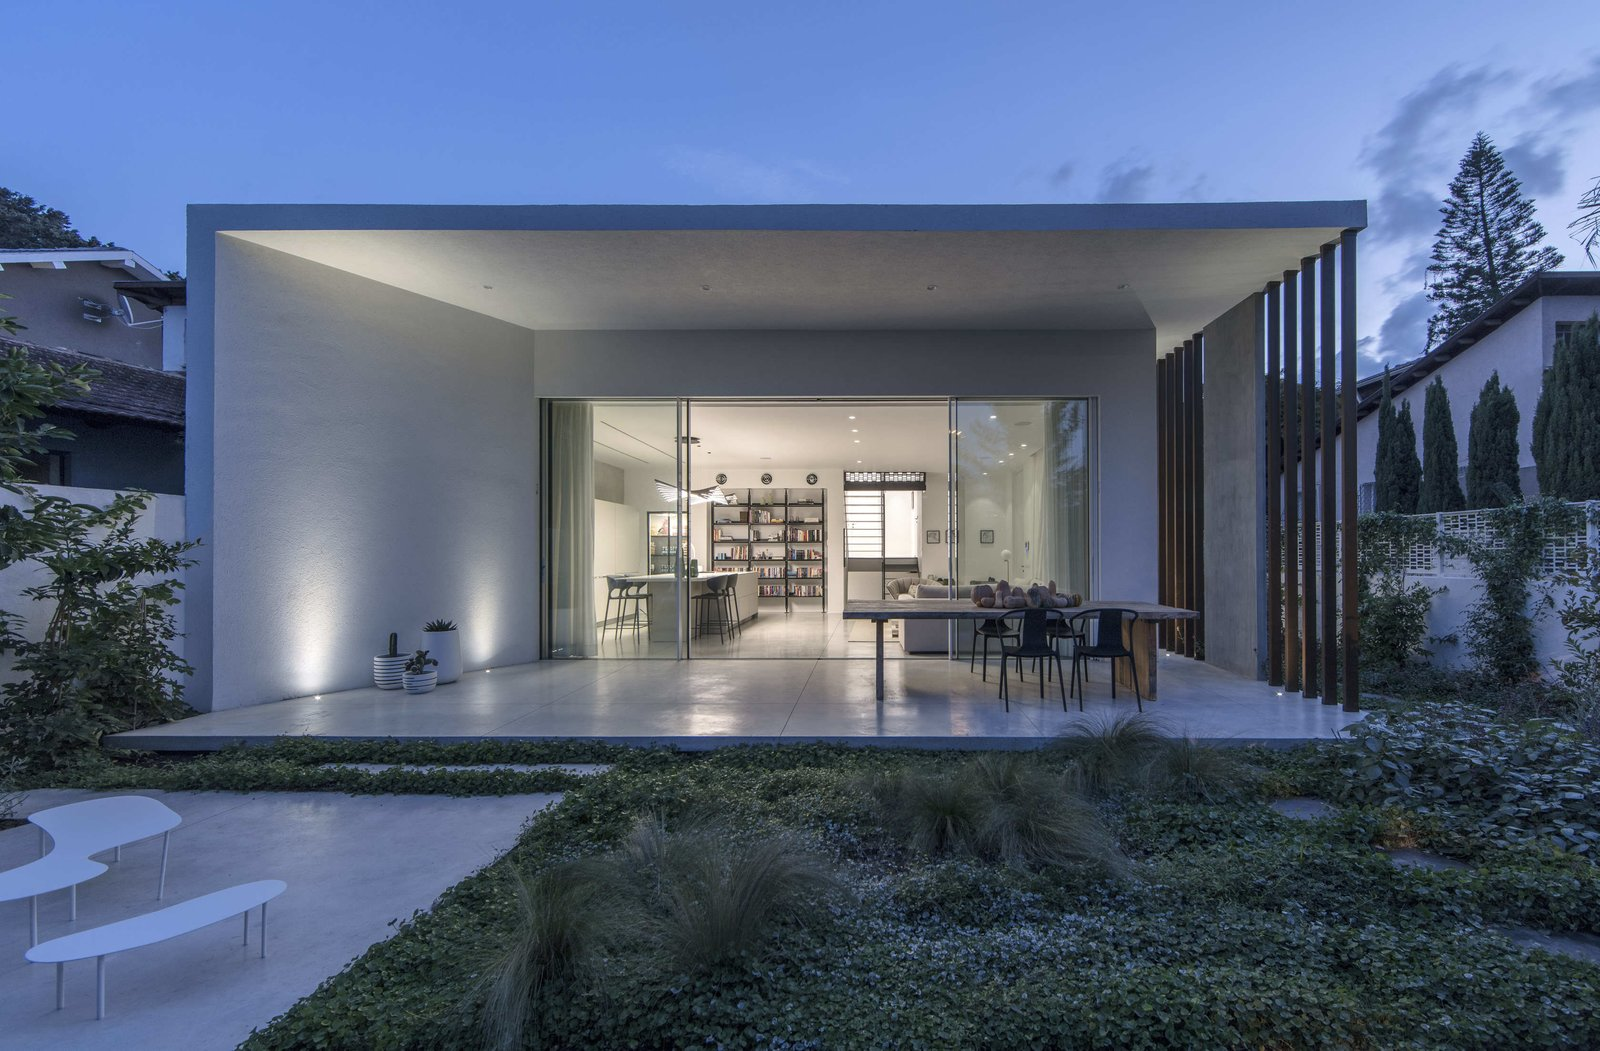 Outdoor, Back Yard, Shrubs, Grass, Large Patio, Porch, Deck, and Horizontal Fences, Wall  Photo 1 of 19 in Sleek Concrete Cubes Form This Pavilion-Like Home in Israel